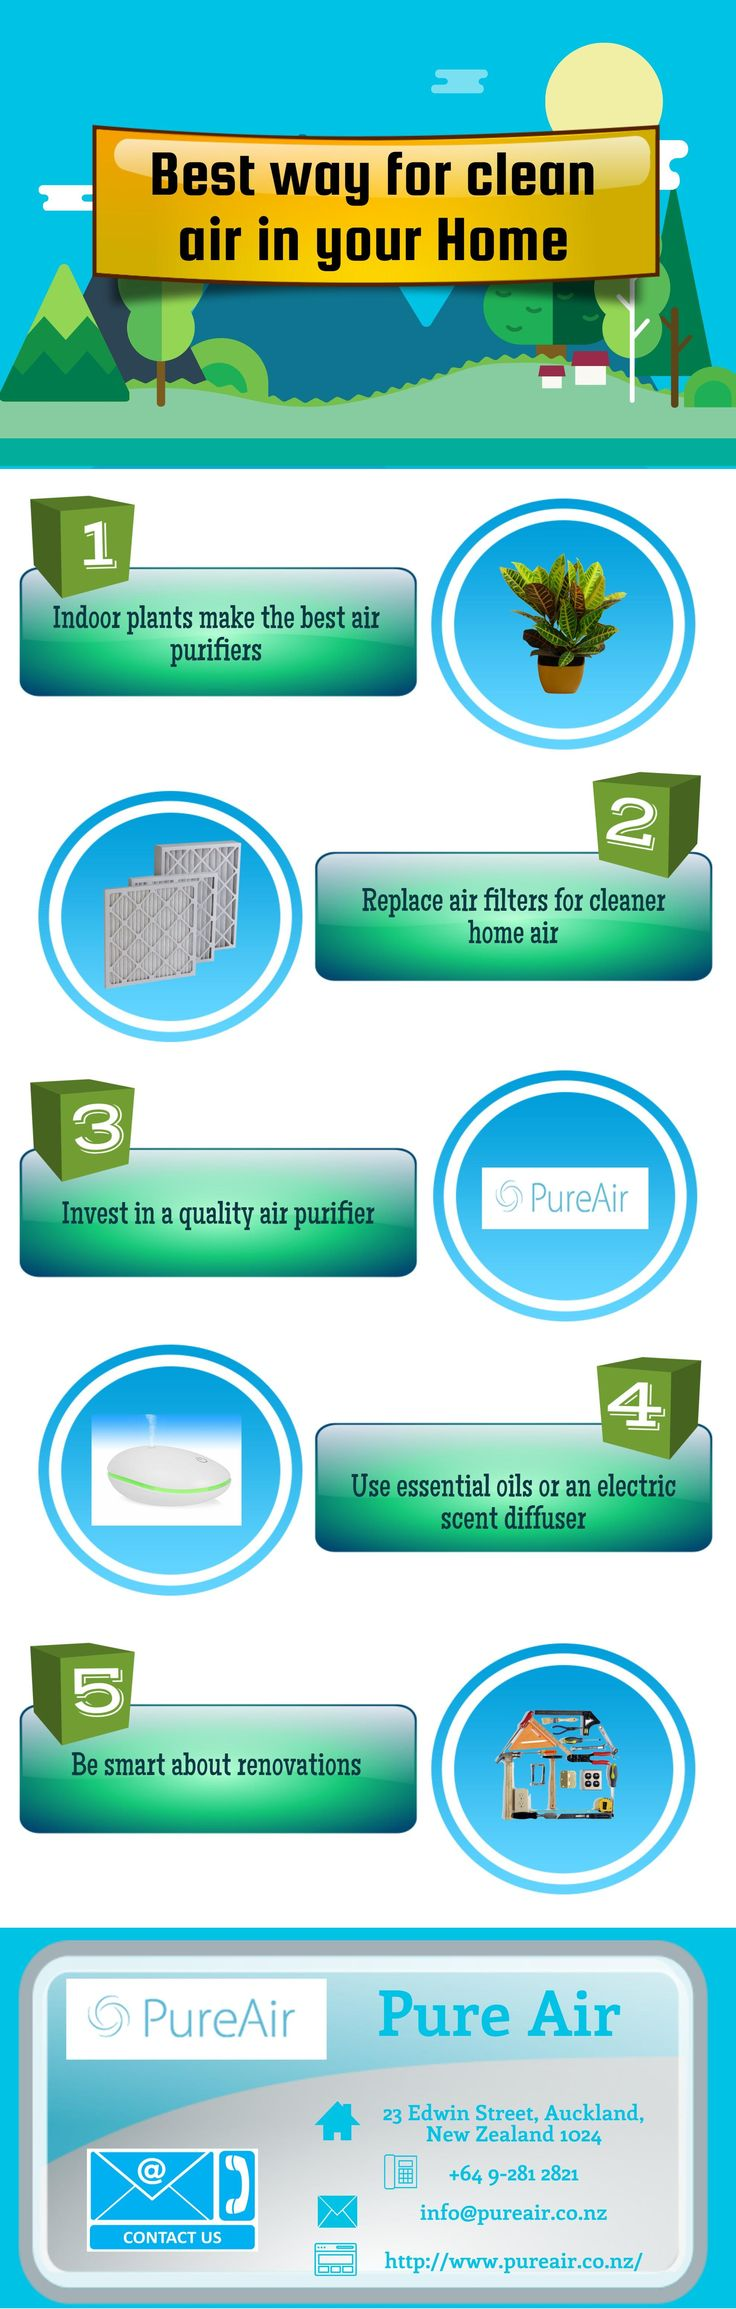 Best way for clean air in your Home